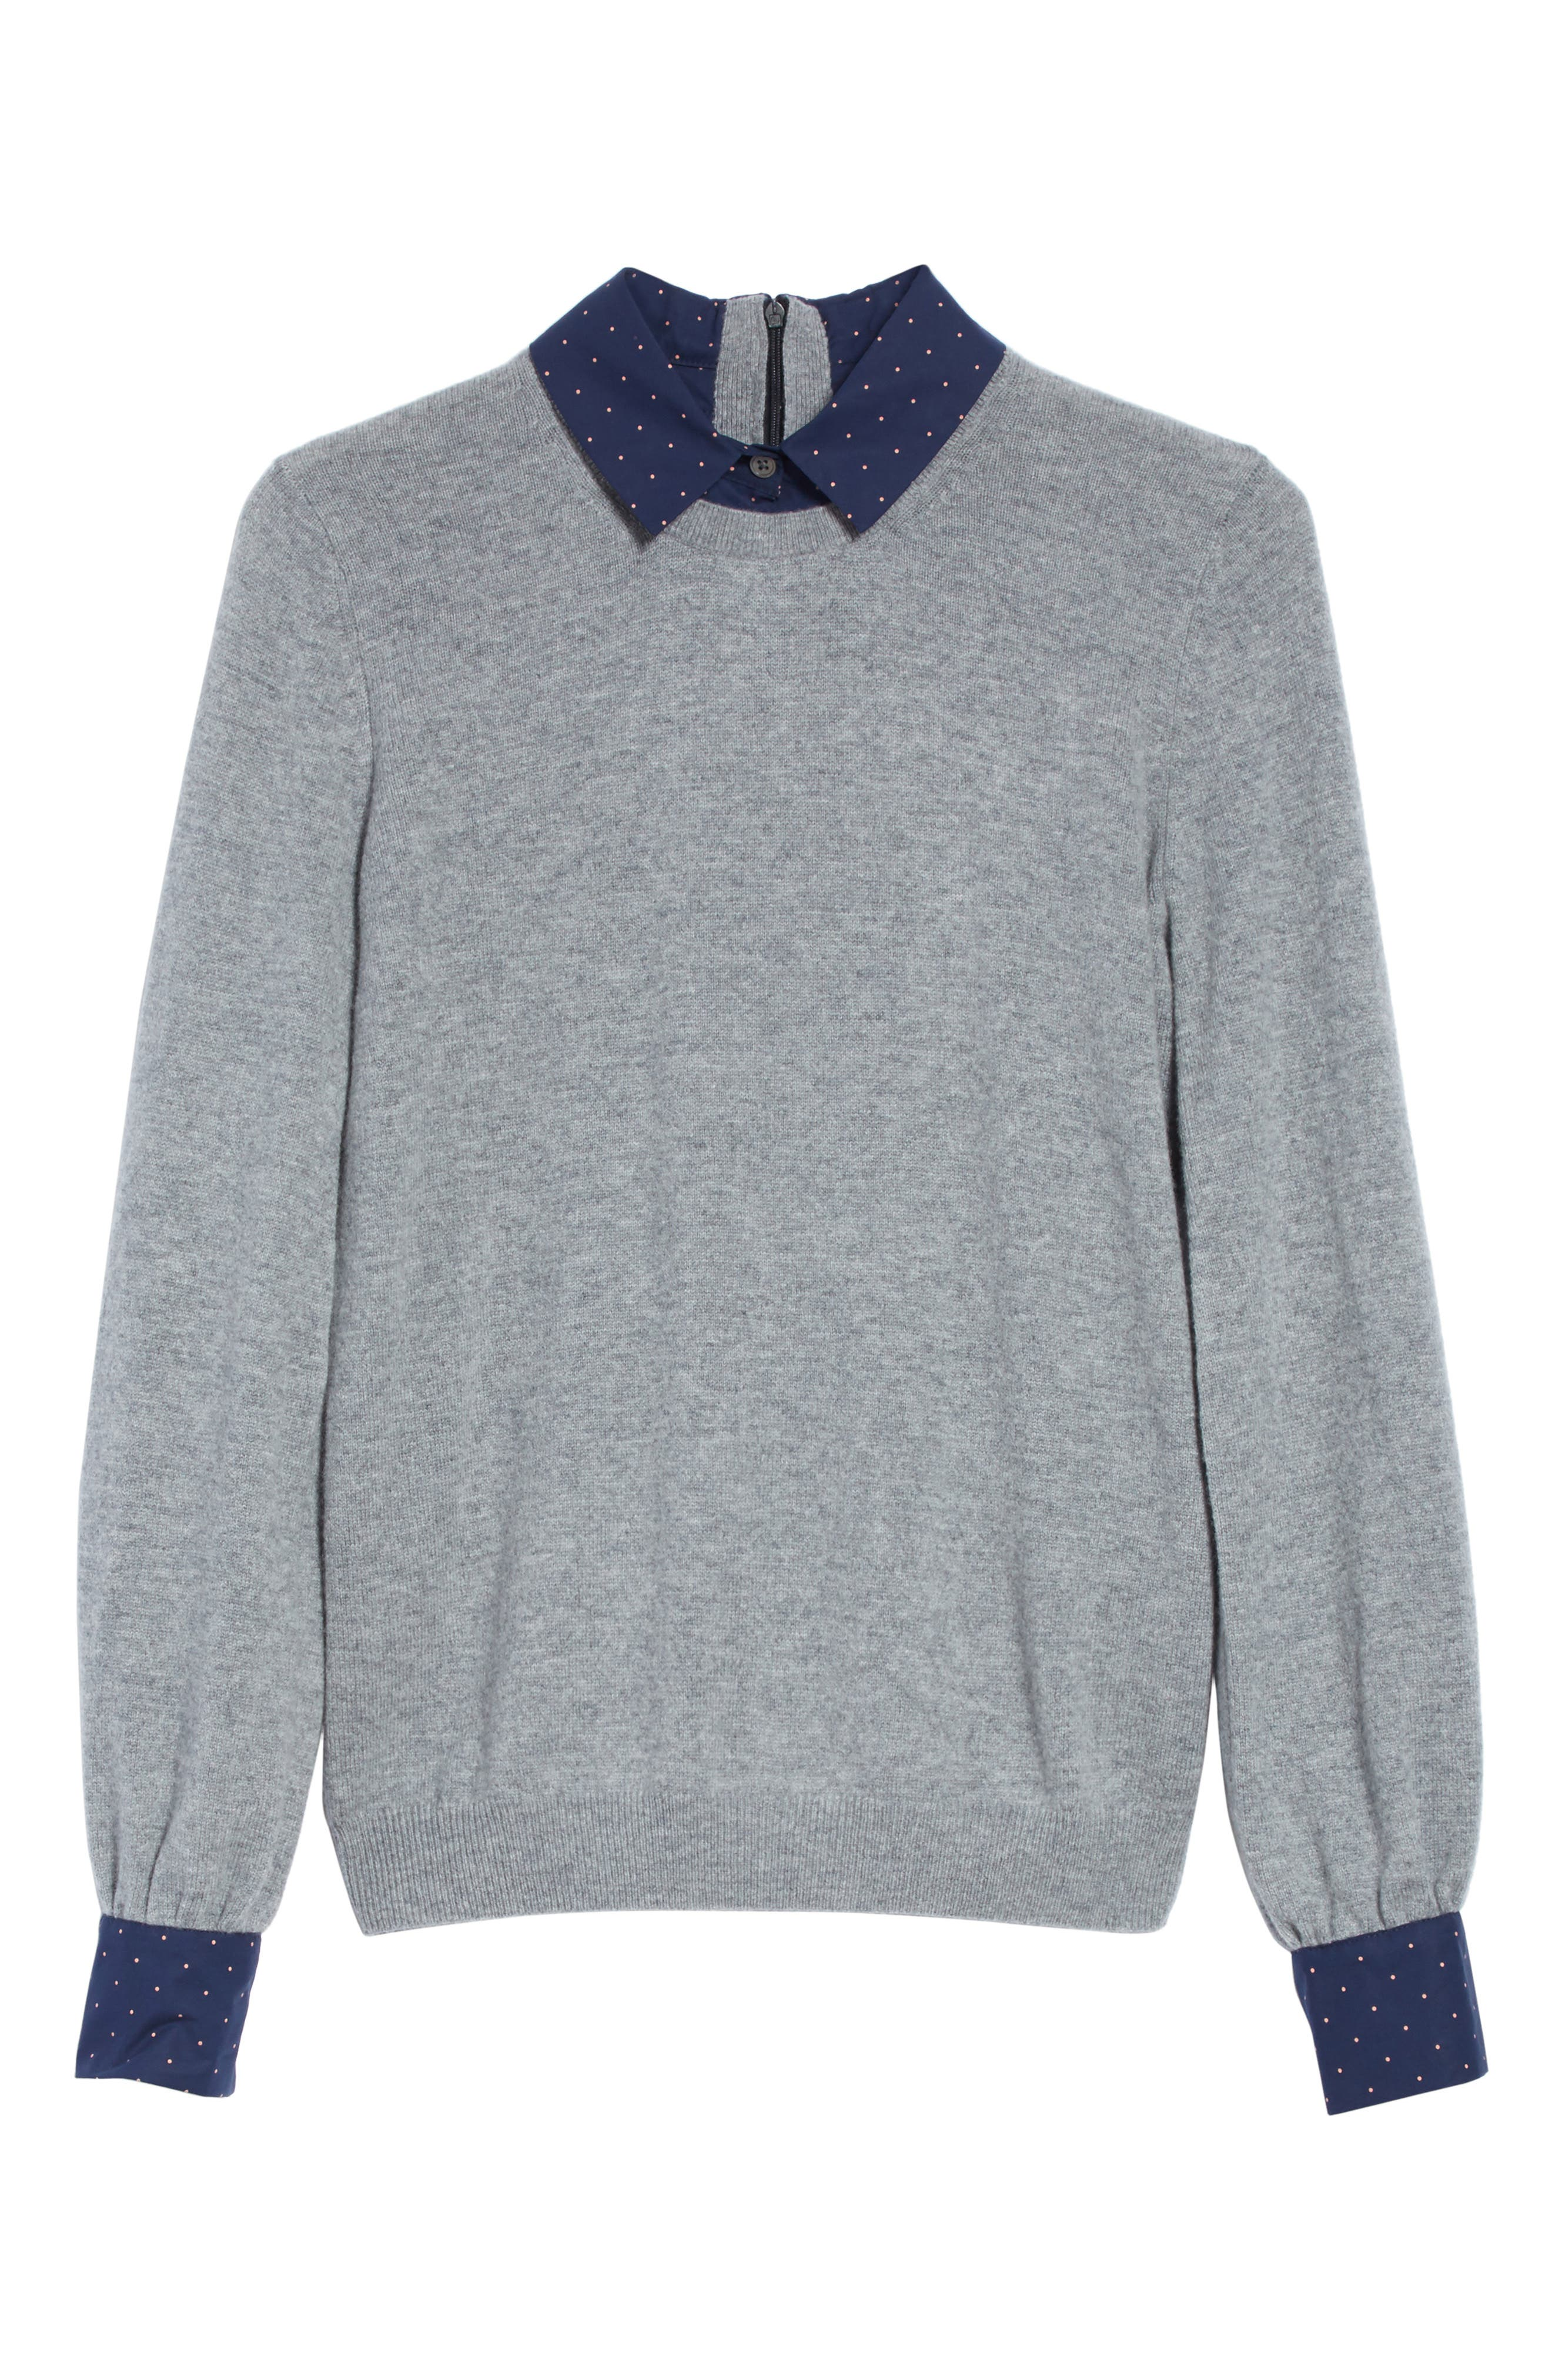 Bahiti Woven Trim Wool & Cashmere Sweater,                             Alternate thumbnail 6, color,                             Heather Grey/ Dark Navy